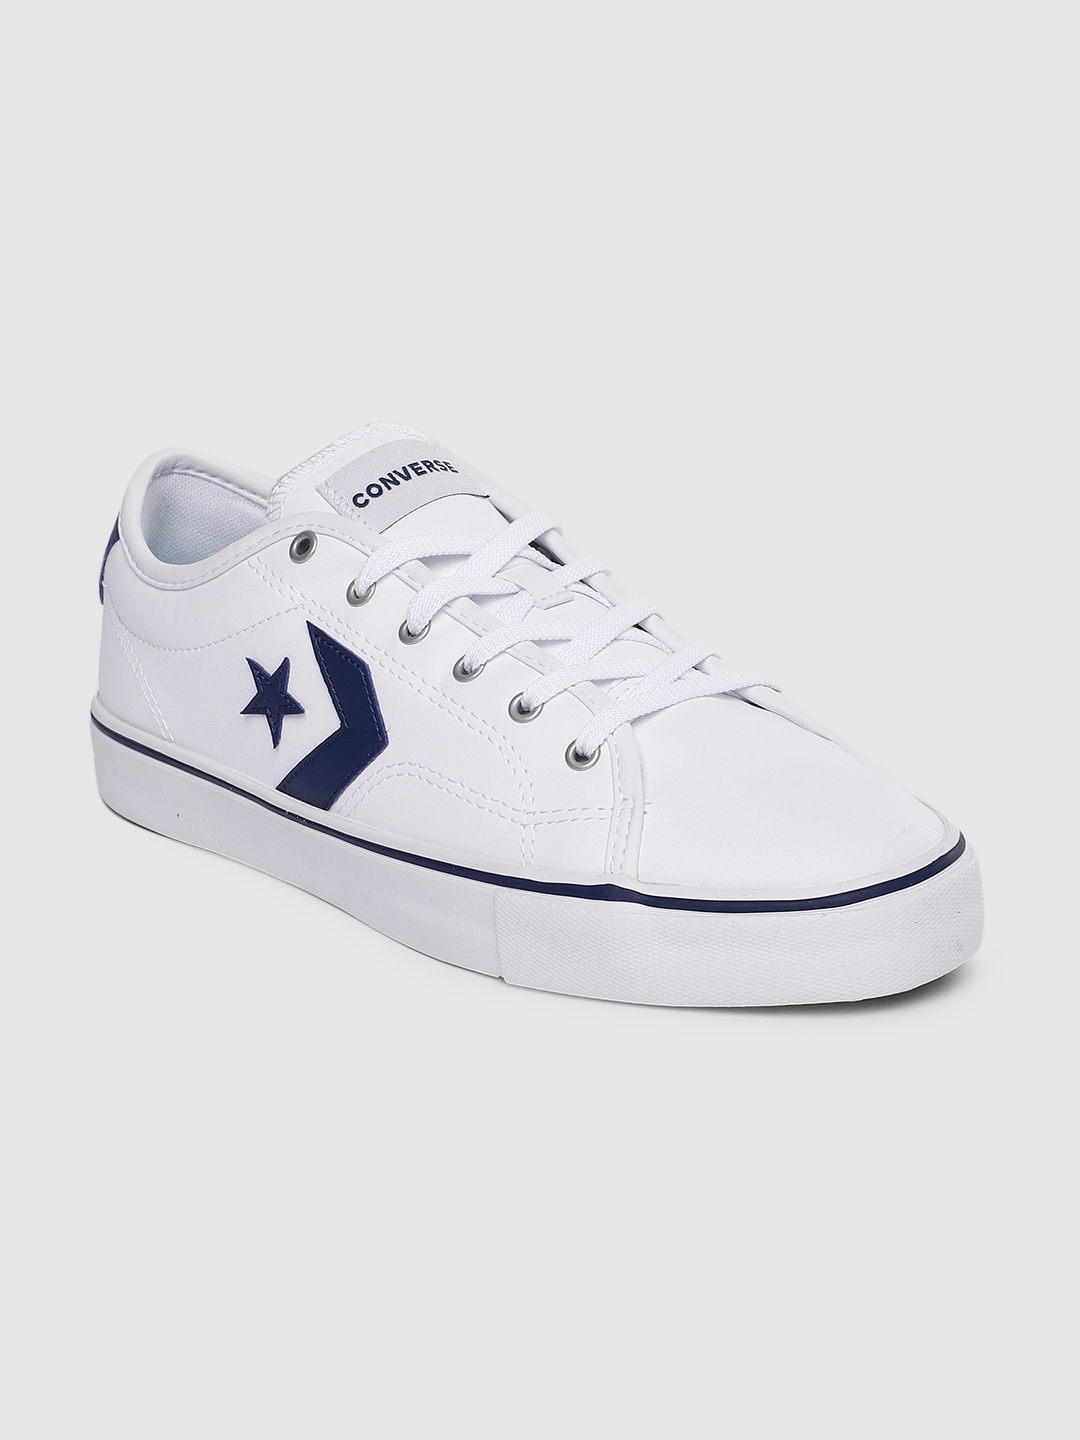 White Sneakers - Casual Shoes